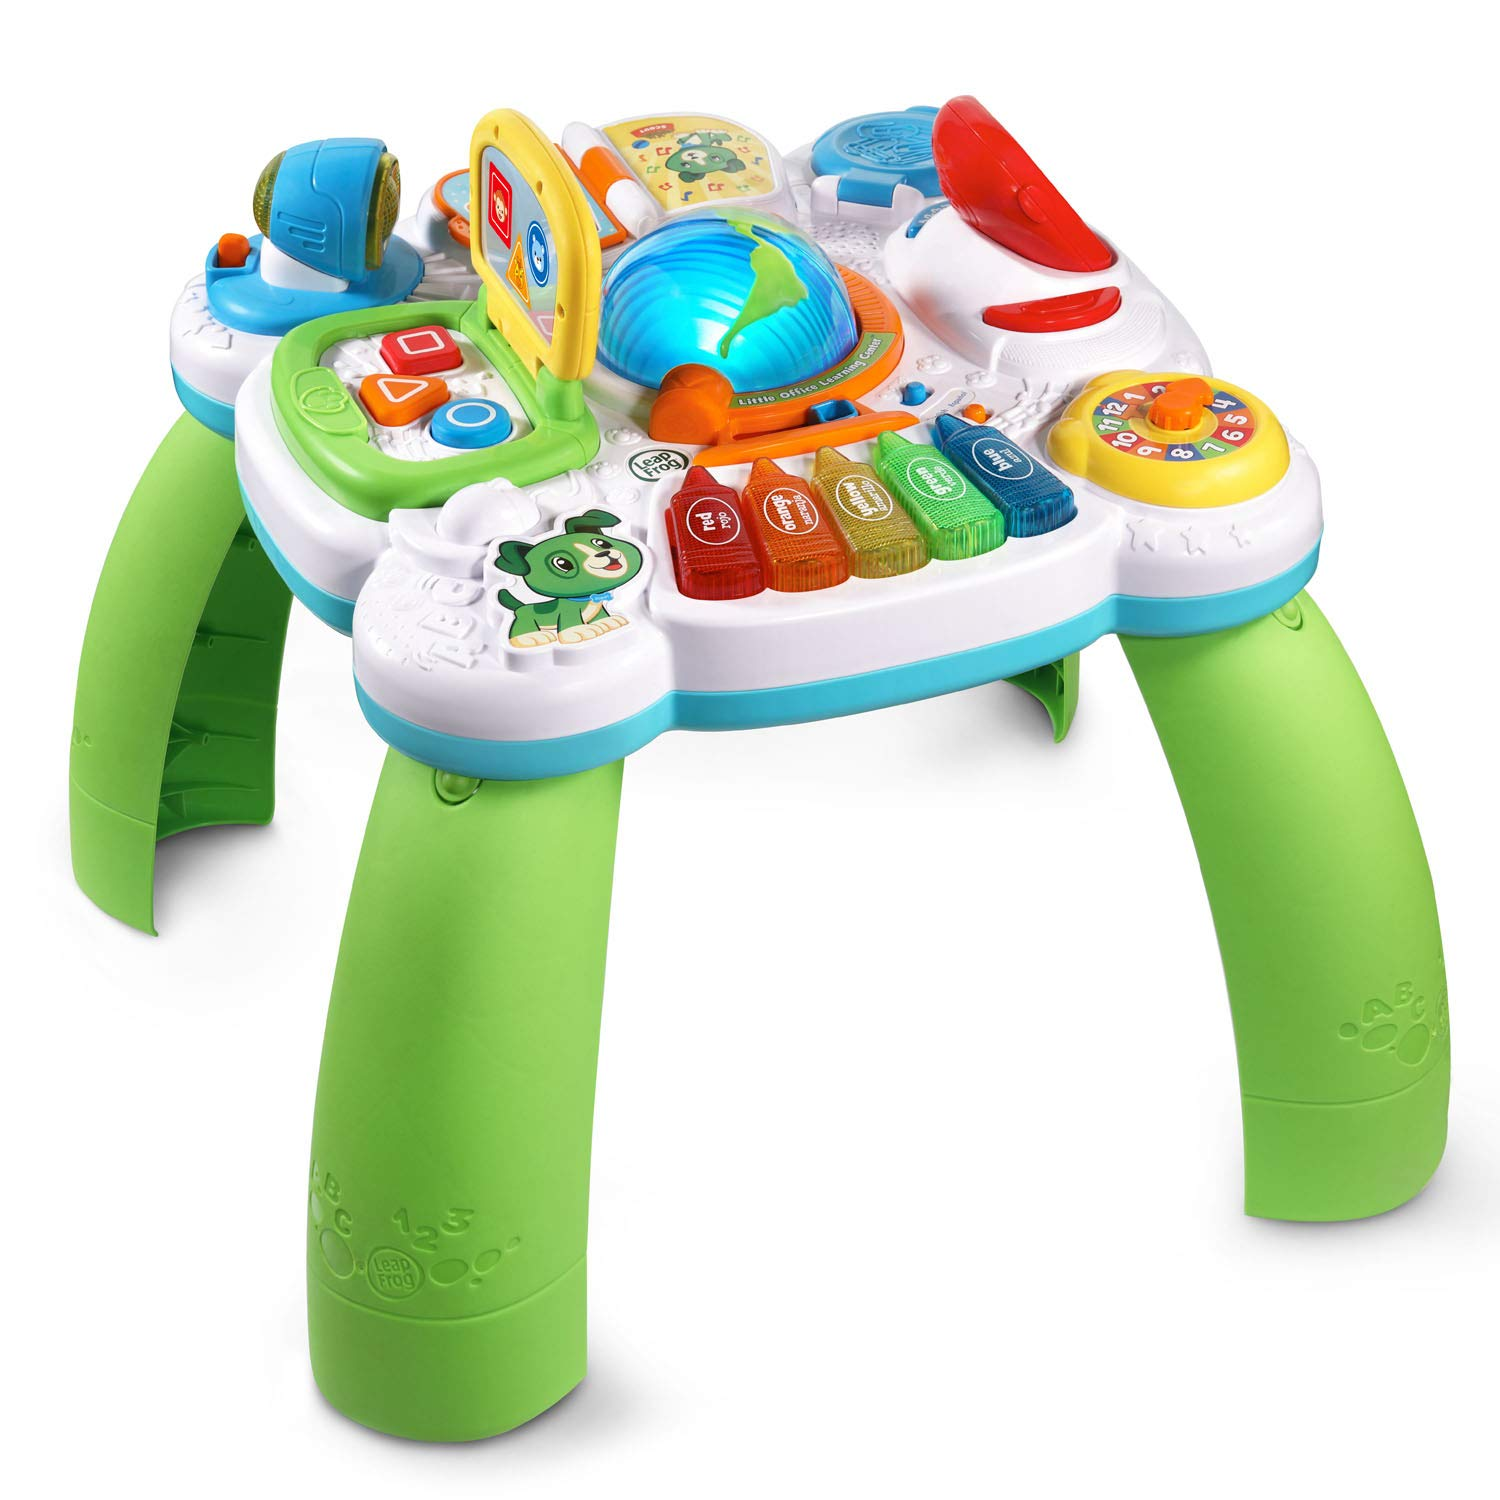 LeapFrog Little Office Learning Center, Green by LeapFrog